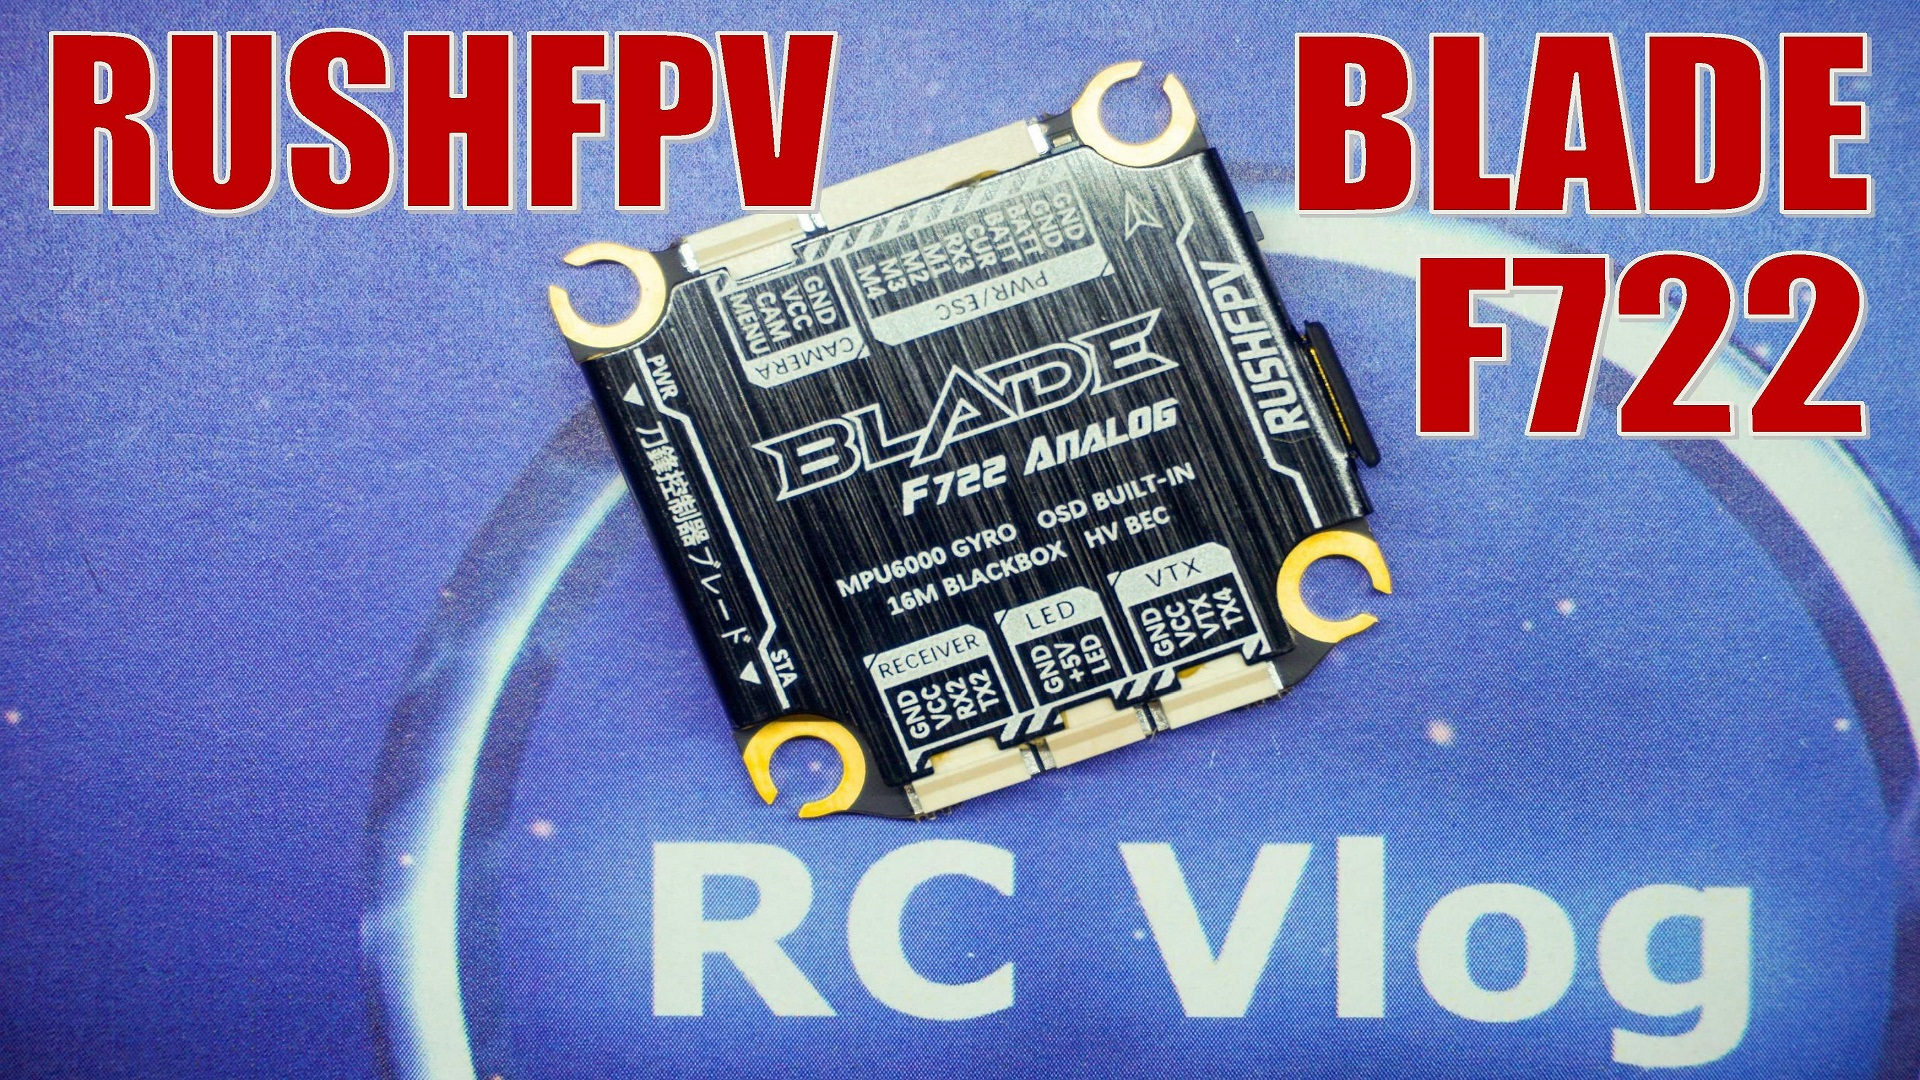 RUSHFPV RUSH BLADE F722 3-8S Flight Controller For Analog / HD DJI Digital FPV System